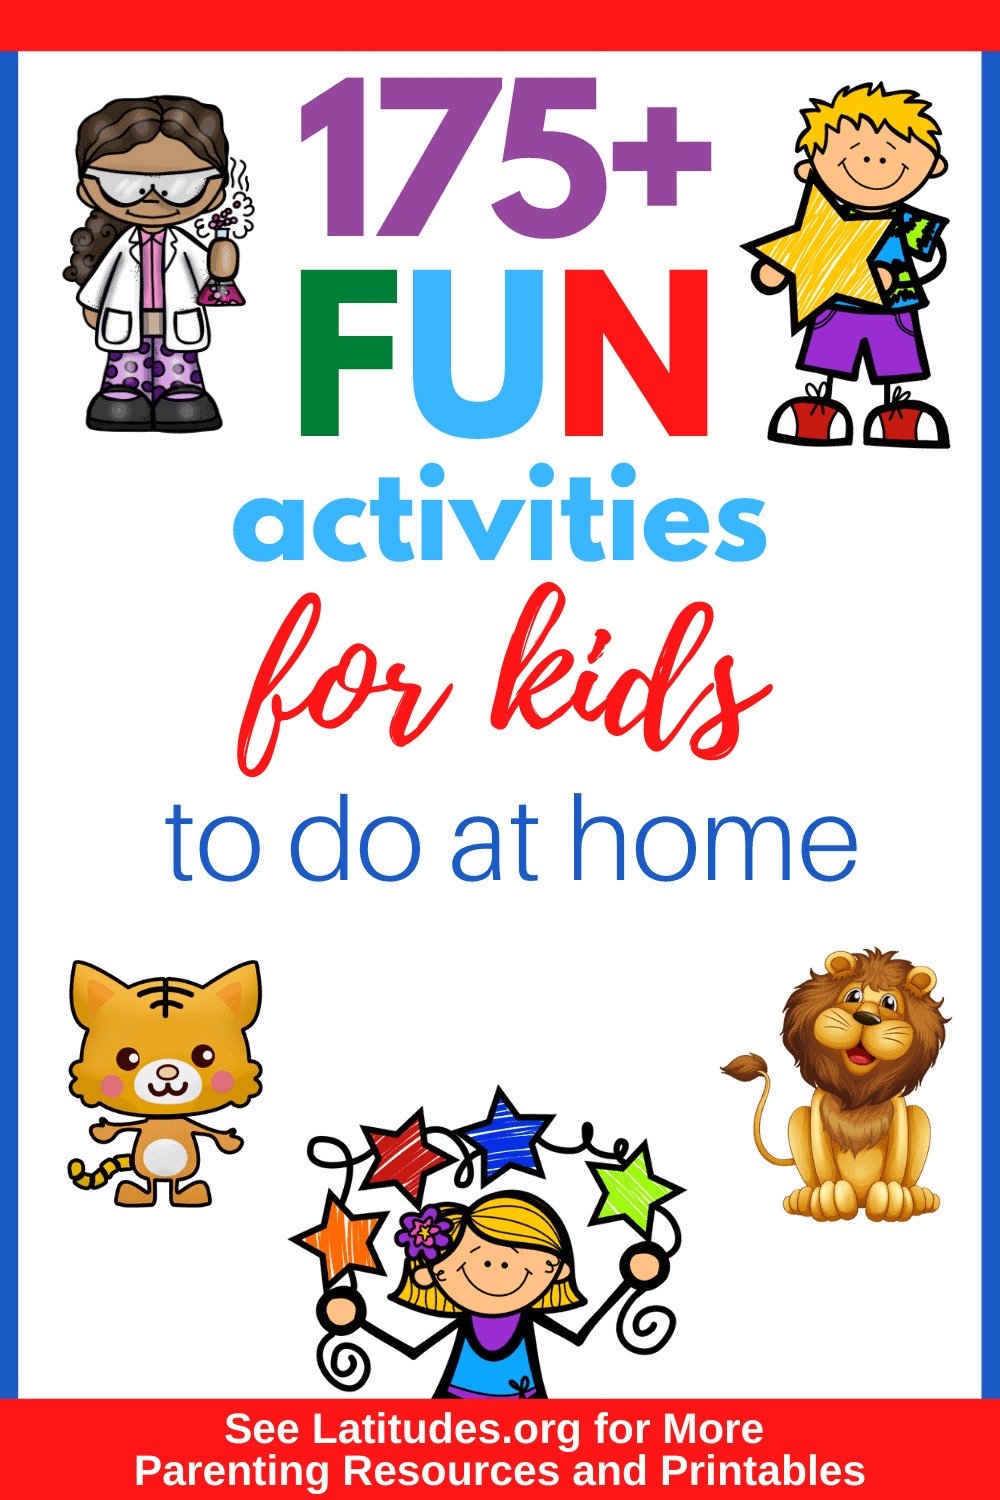 175+ Fun Activities for Kids at Home